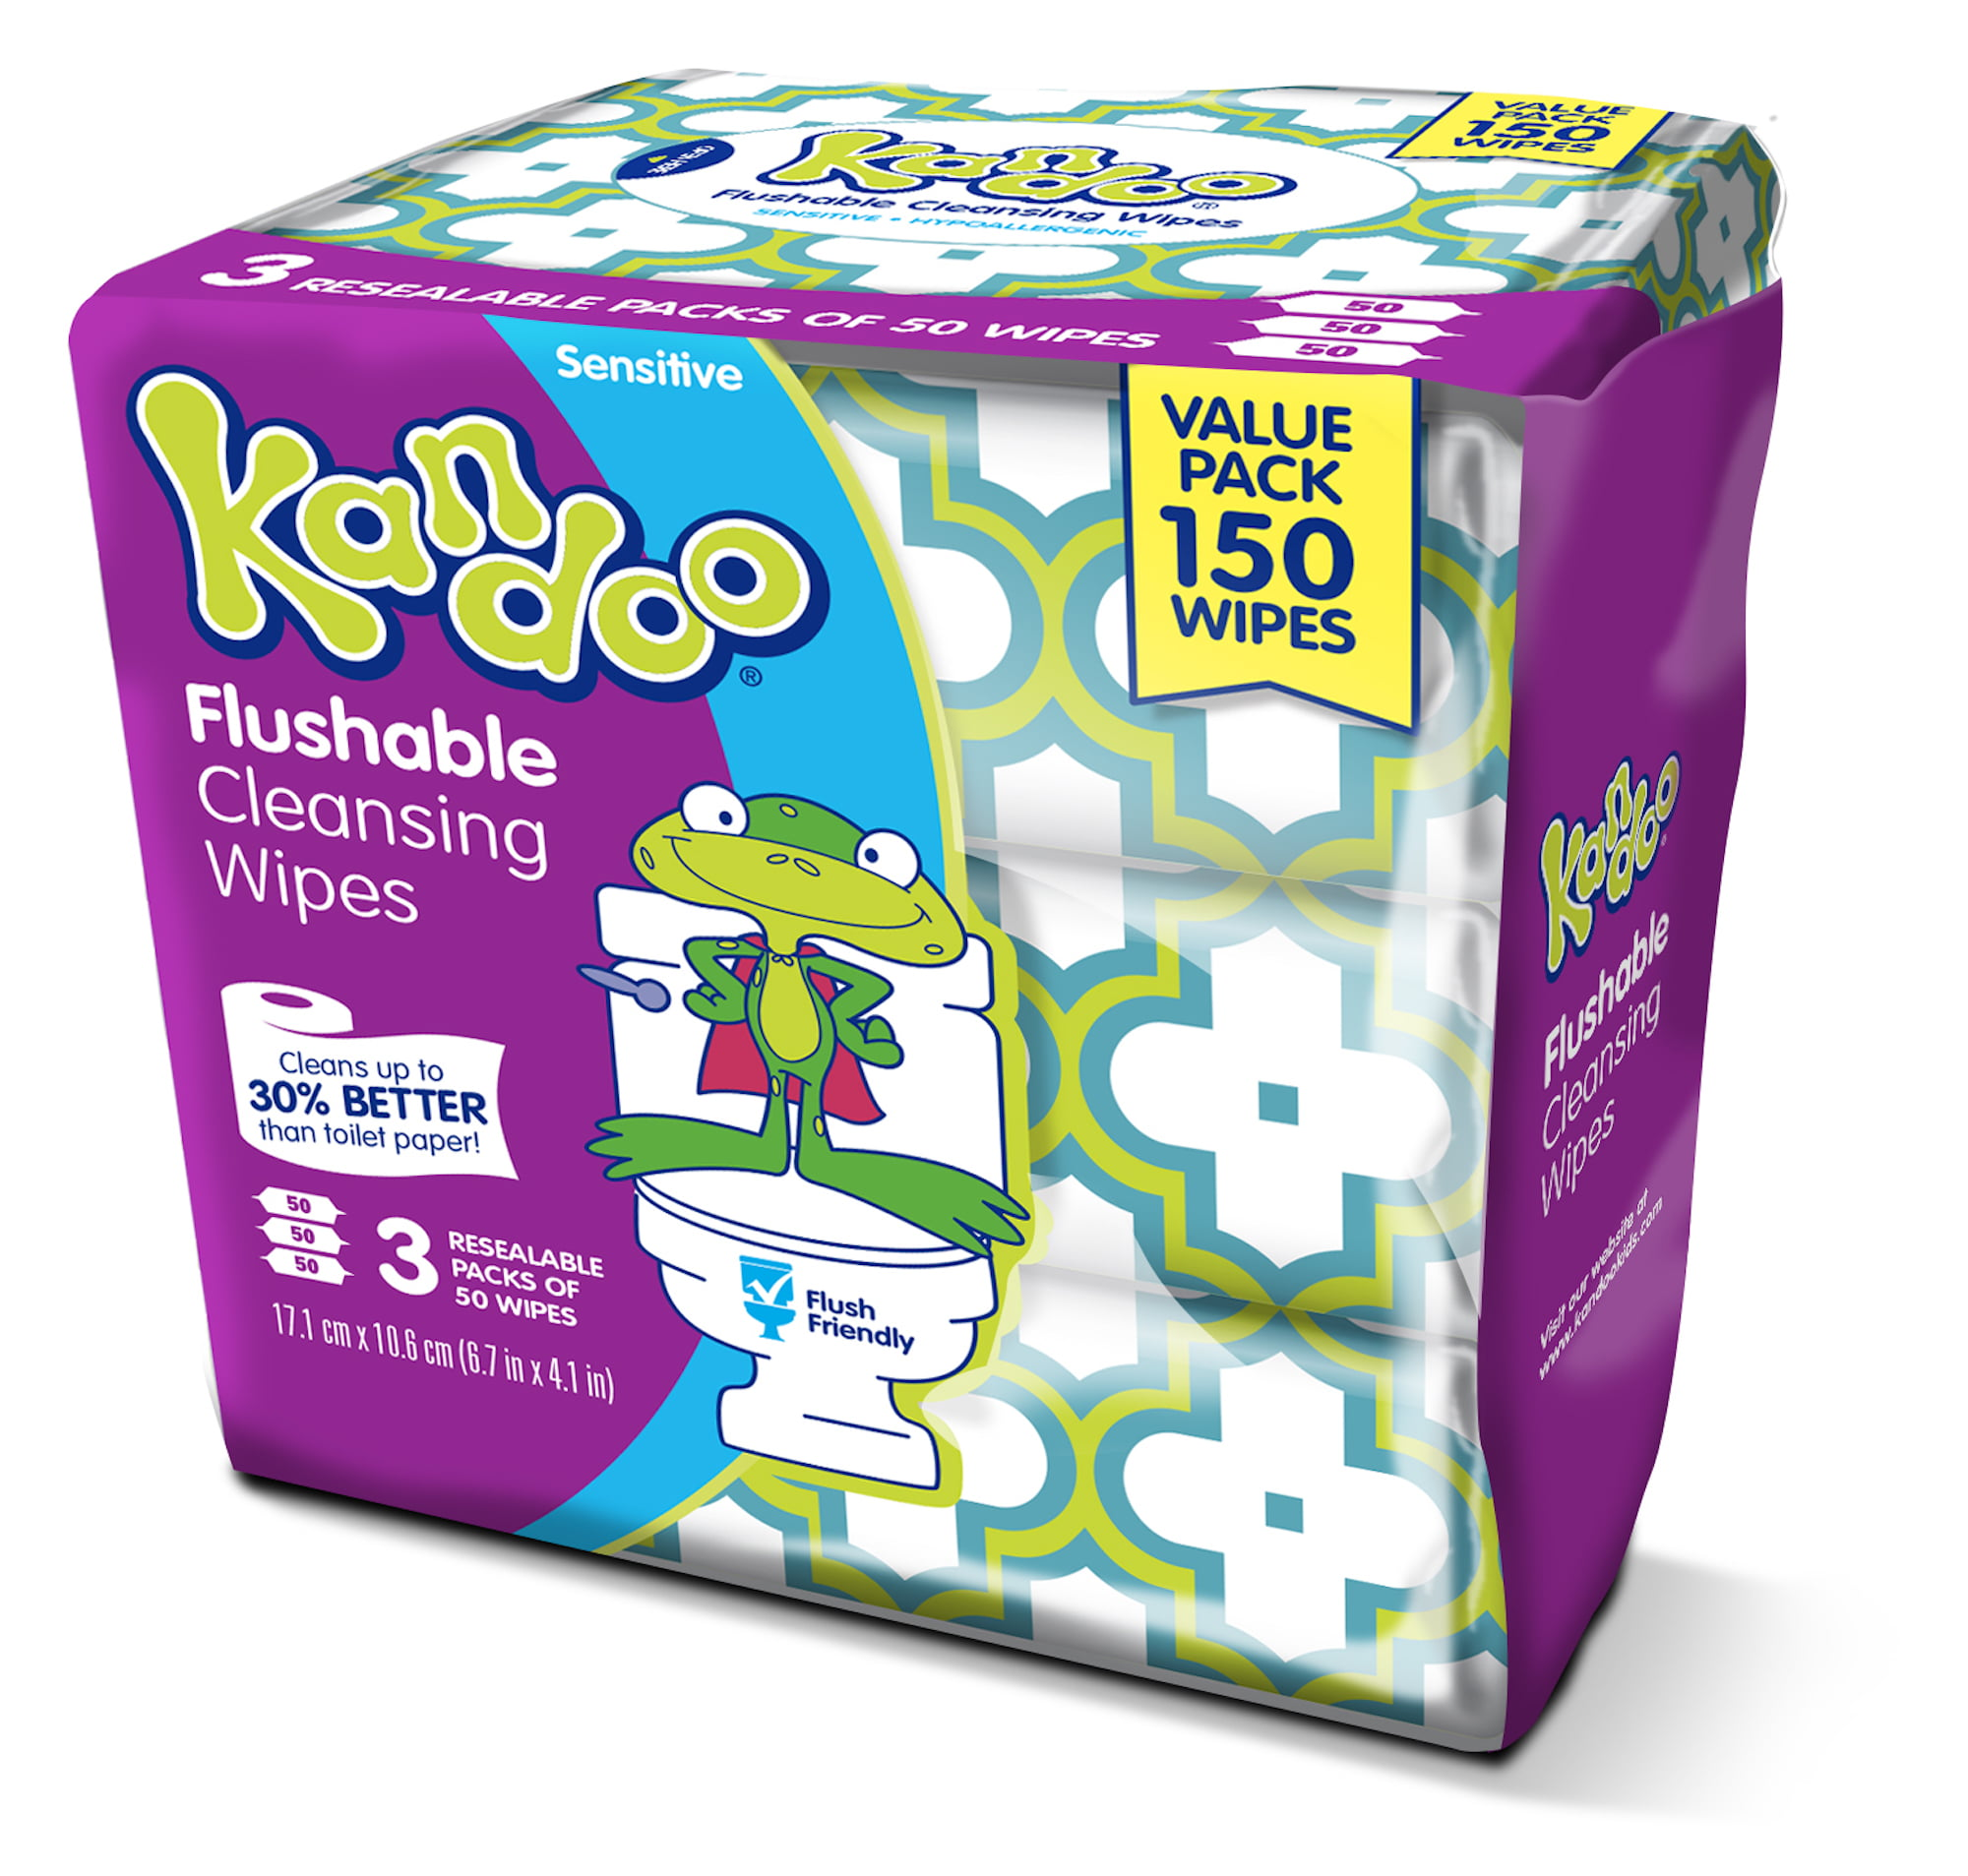 Sensitive 100 ea Pampers Kandoo Flushable Wipes Pack of 6